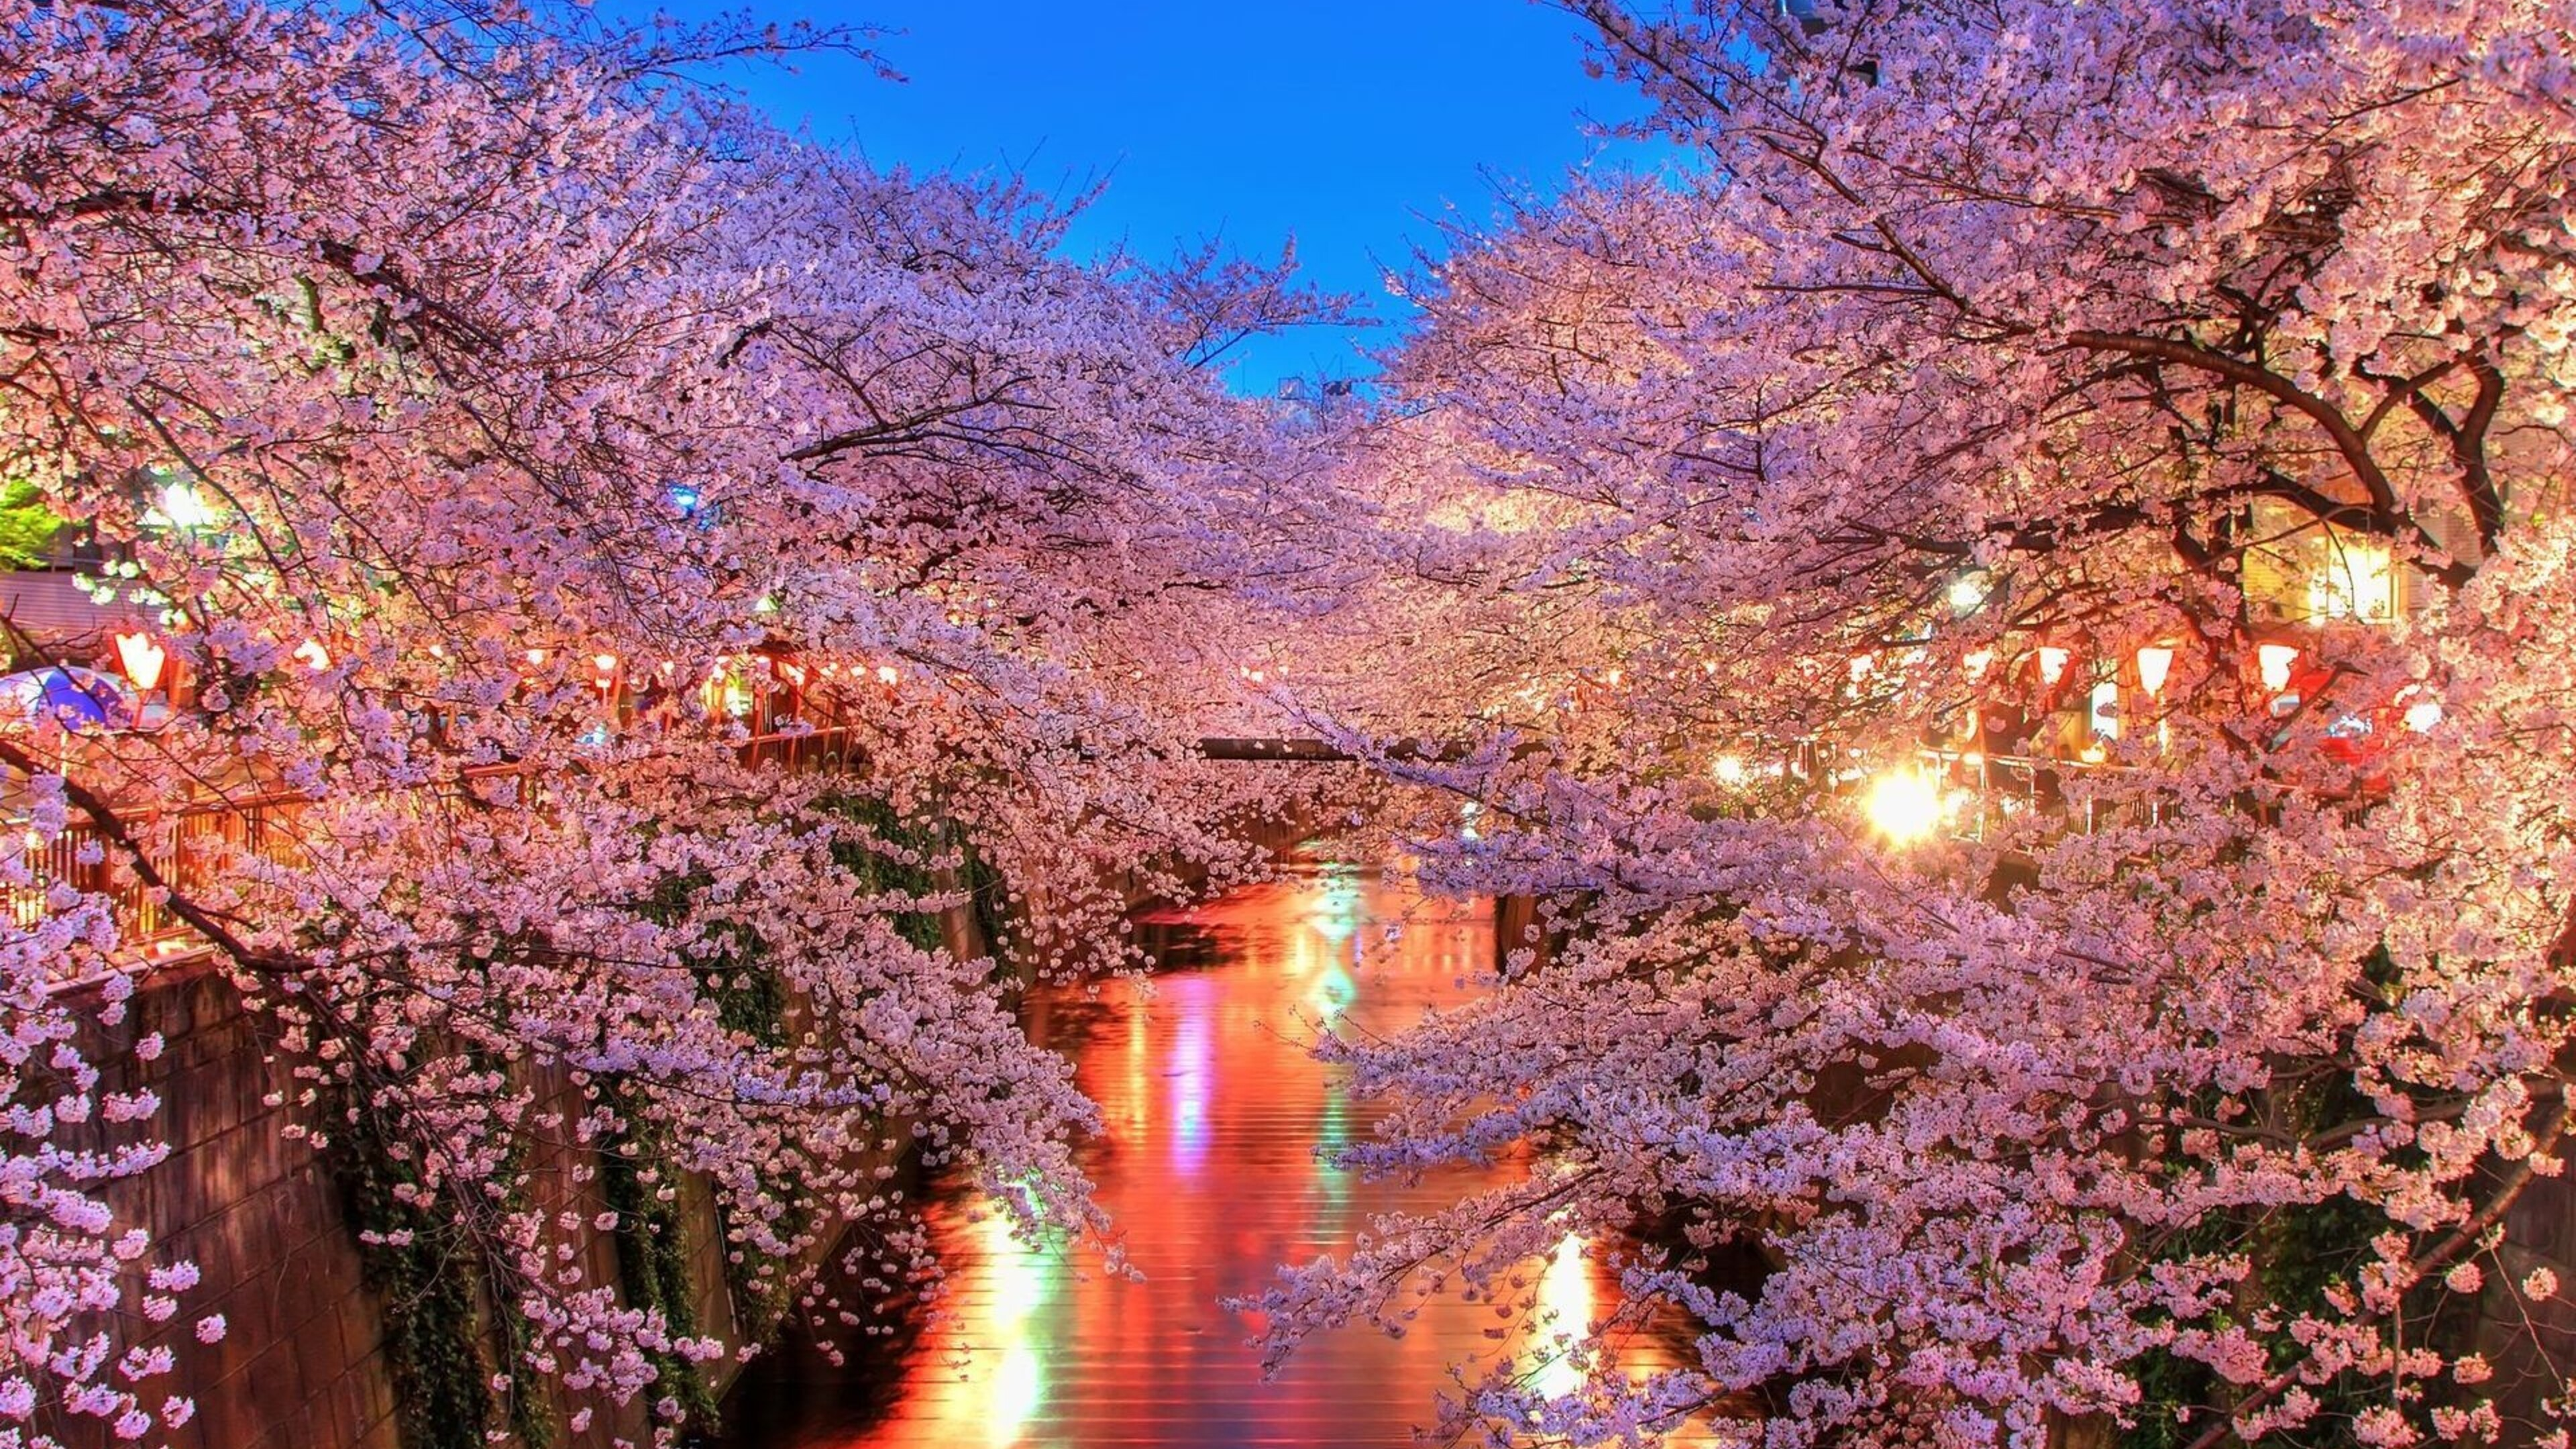 3840x2160 Cherry Blossom Trees 4k HD 4k Wallpapers, Images ...